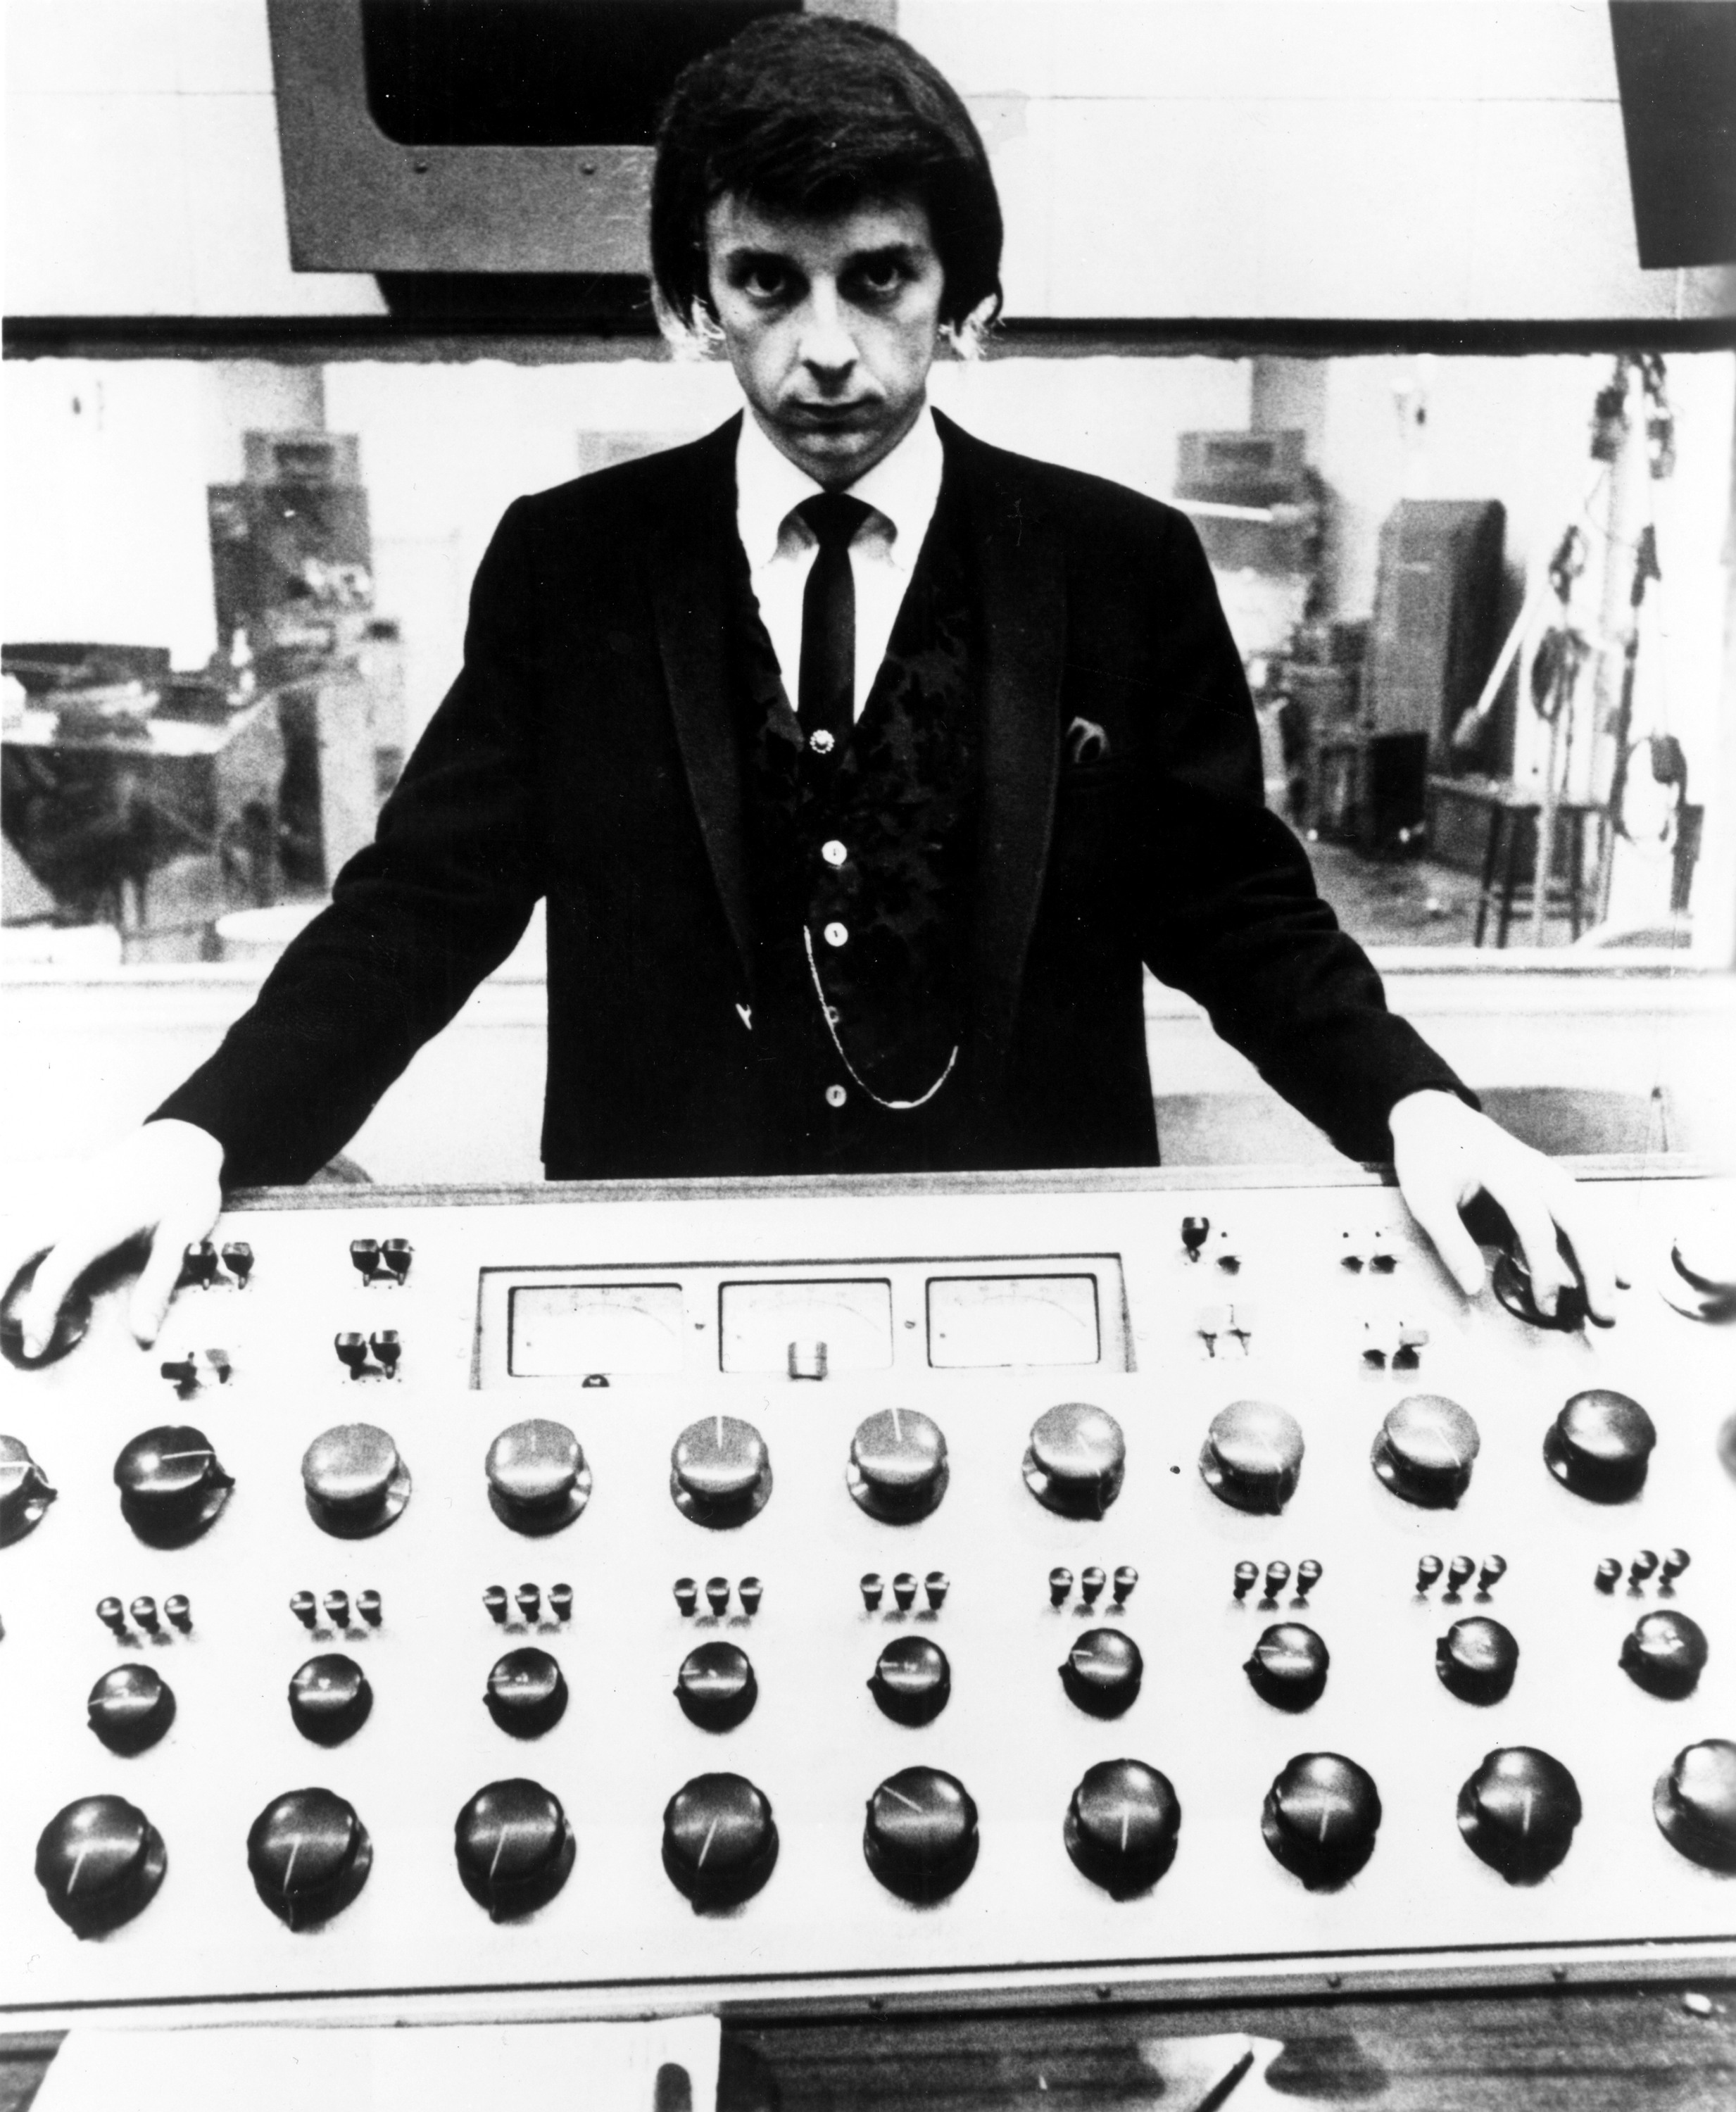 LOS ANGELES - 1966: Producer Phil Spector poses at the mixing board during a recording session at Gold Star Studios in 1966 in Los Angeles, California. (Photo by Michael Ochs Archives/Getty Images)